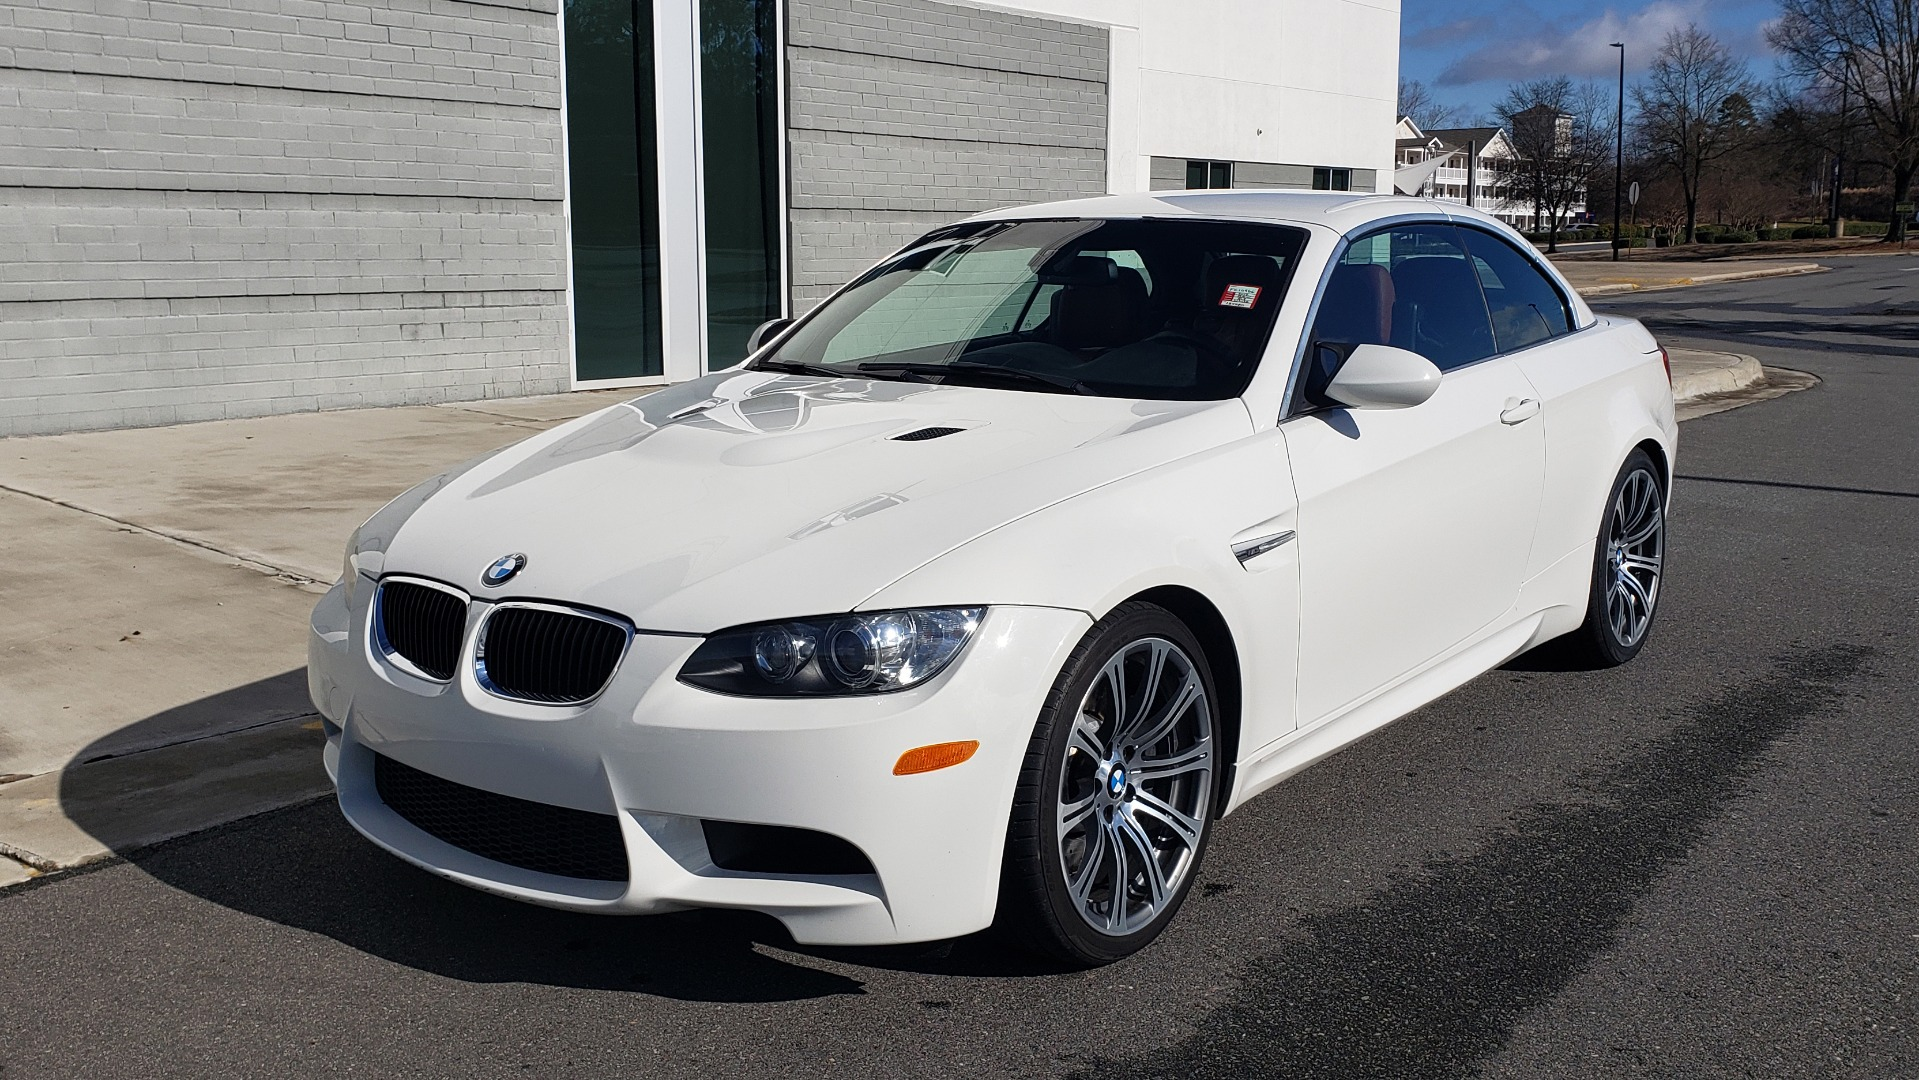 Used 2012 BMW M3 CONVERTIBLE / PREM PKG / NAV / M-DOUBLE CLUTCH AUTOMATIC for sale Sold at Formula Imports in Charlotte NC 28227 4